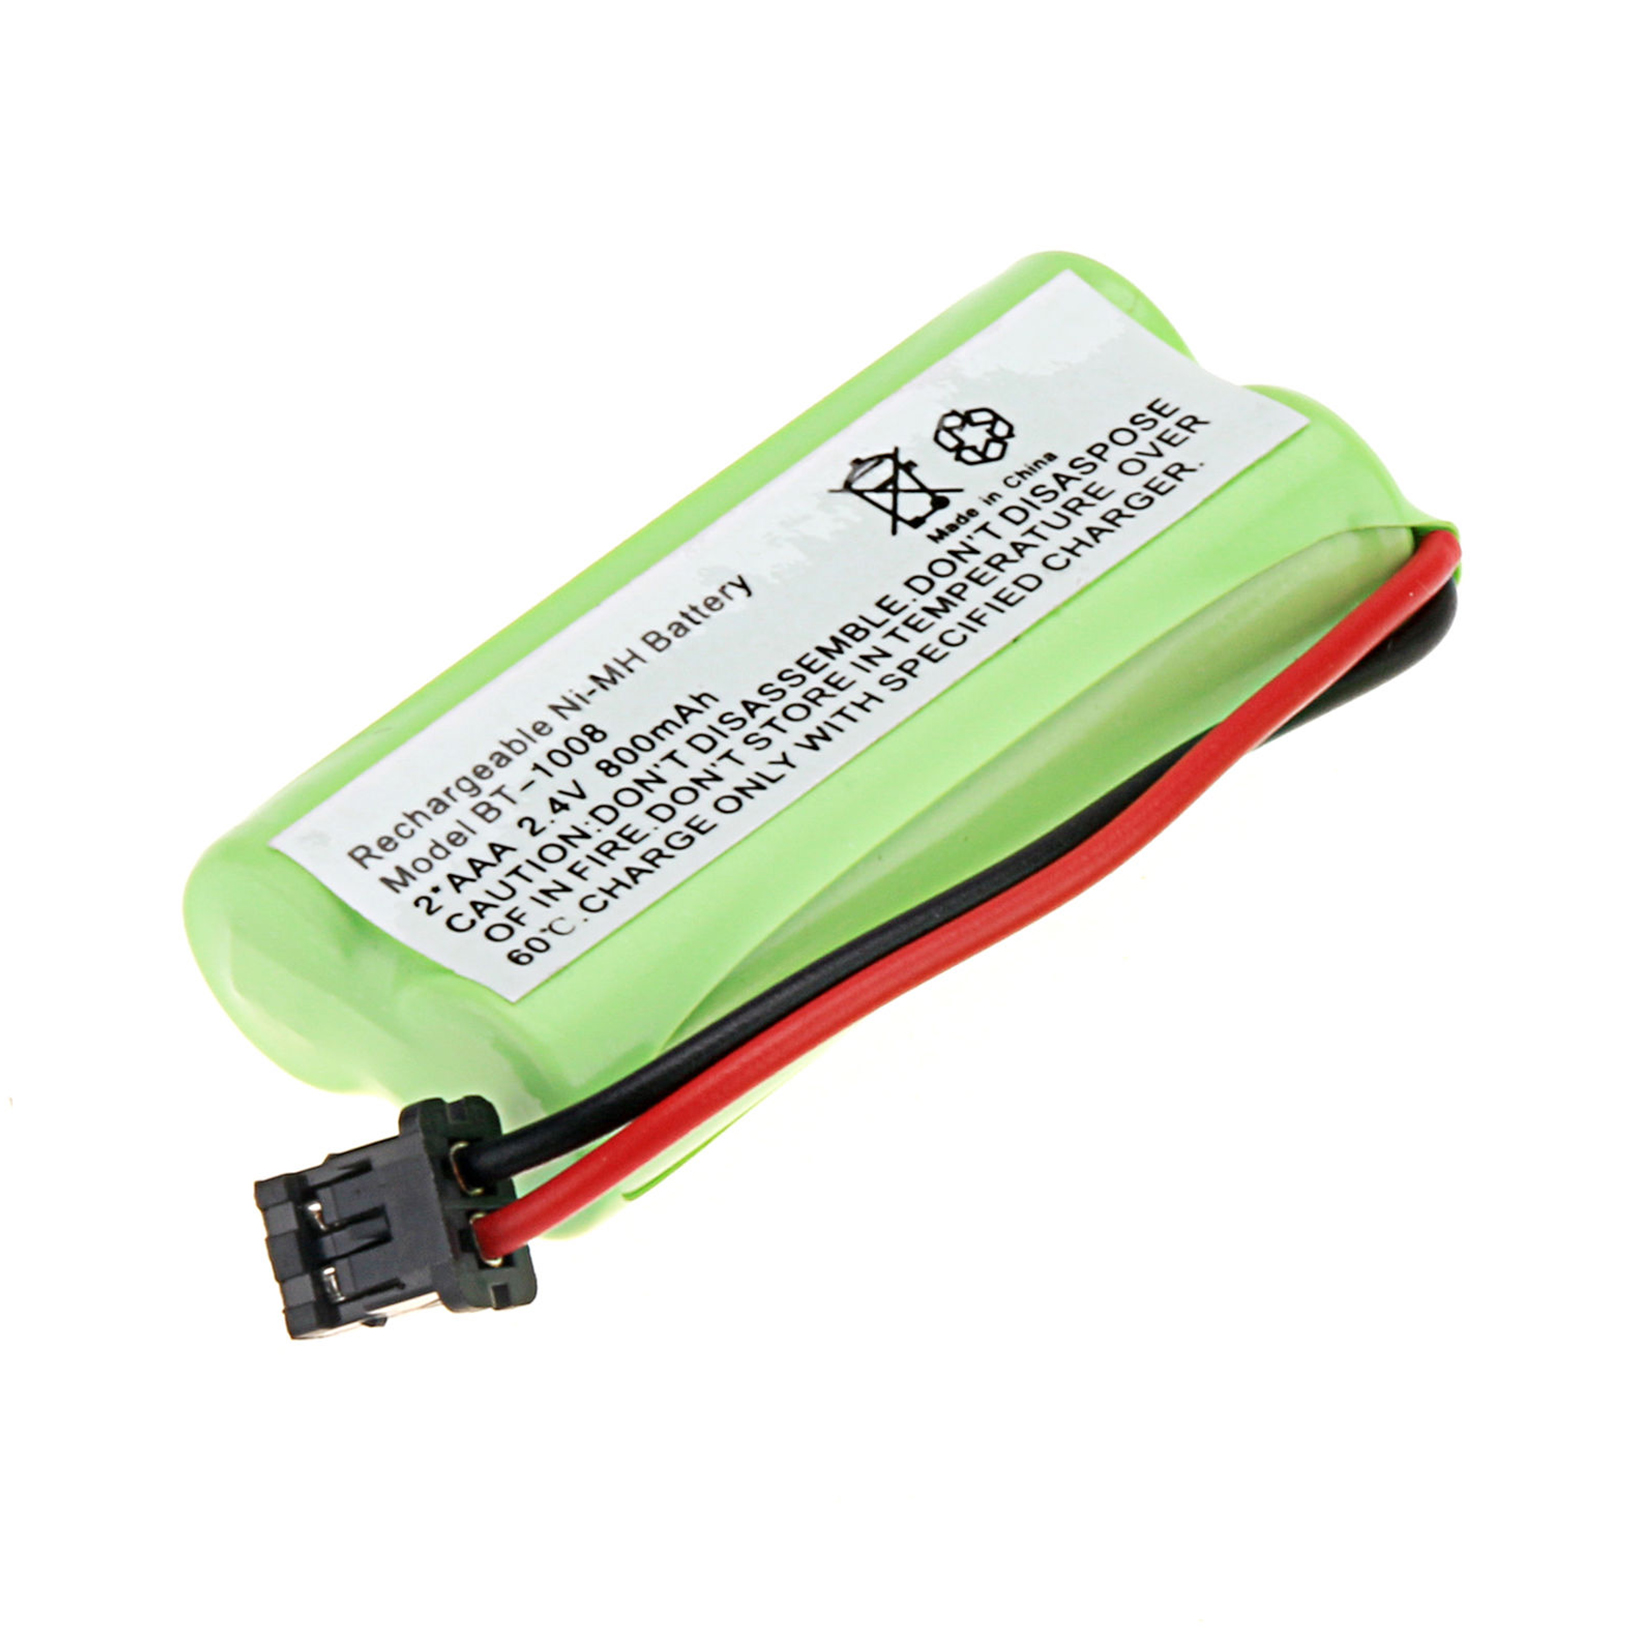 2 AAA 2 AA 1800mAh 3000mAh Ni-MH Batterie rechargeable Lampe Solaire MP3 jaune